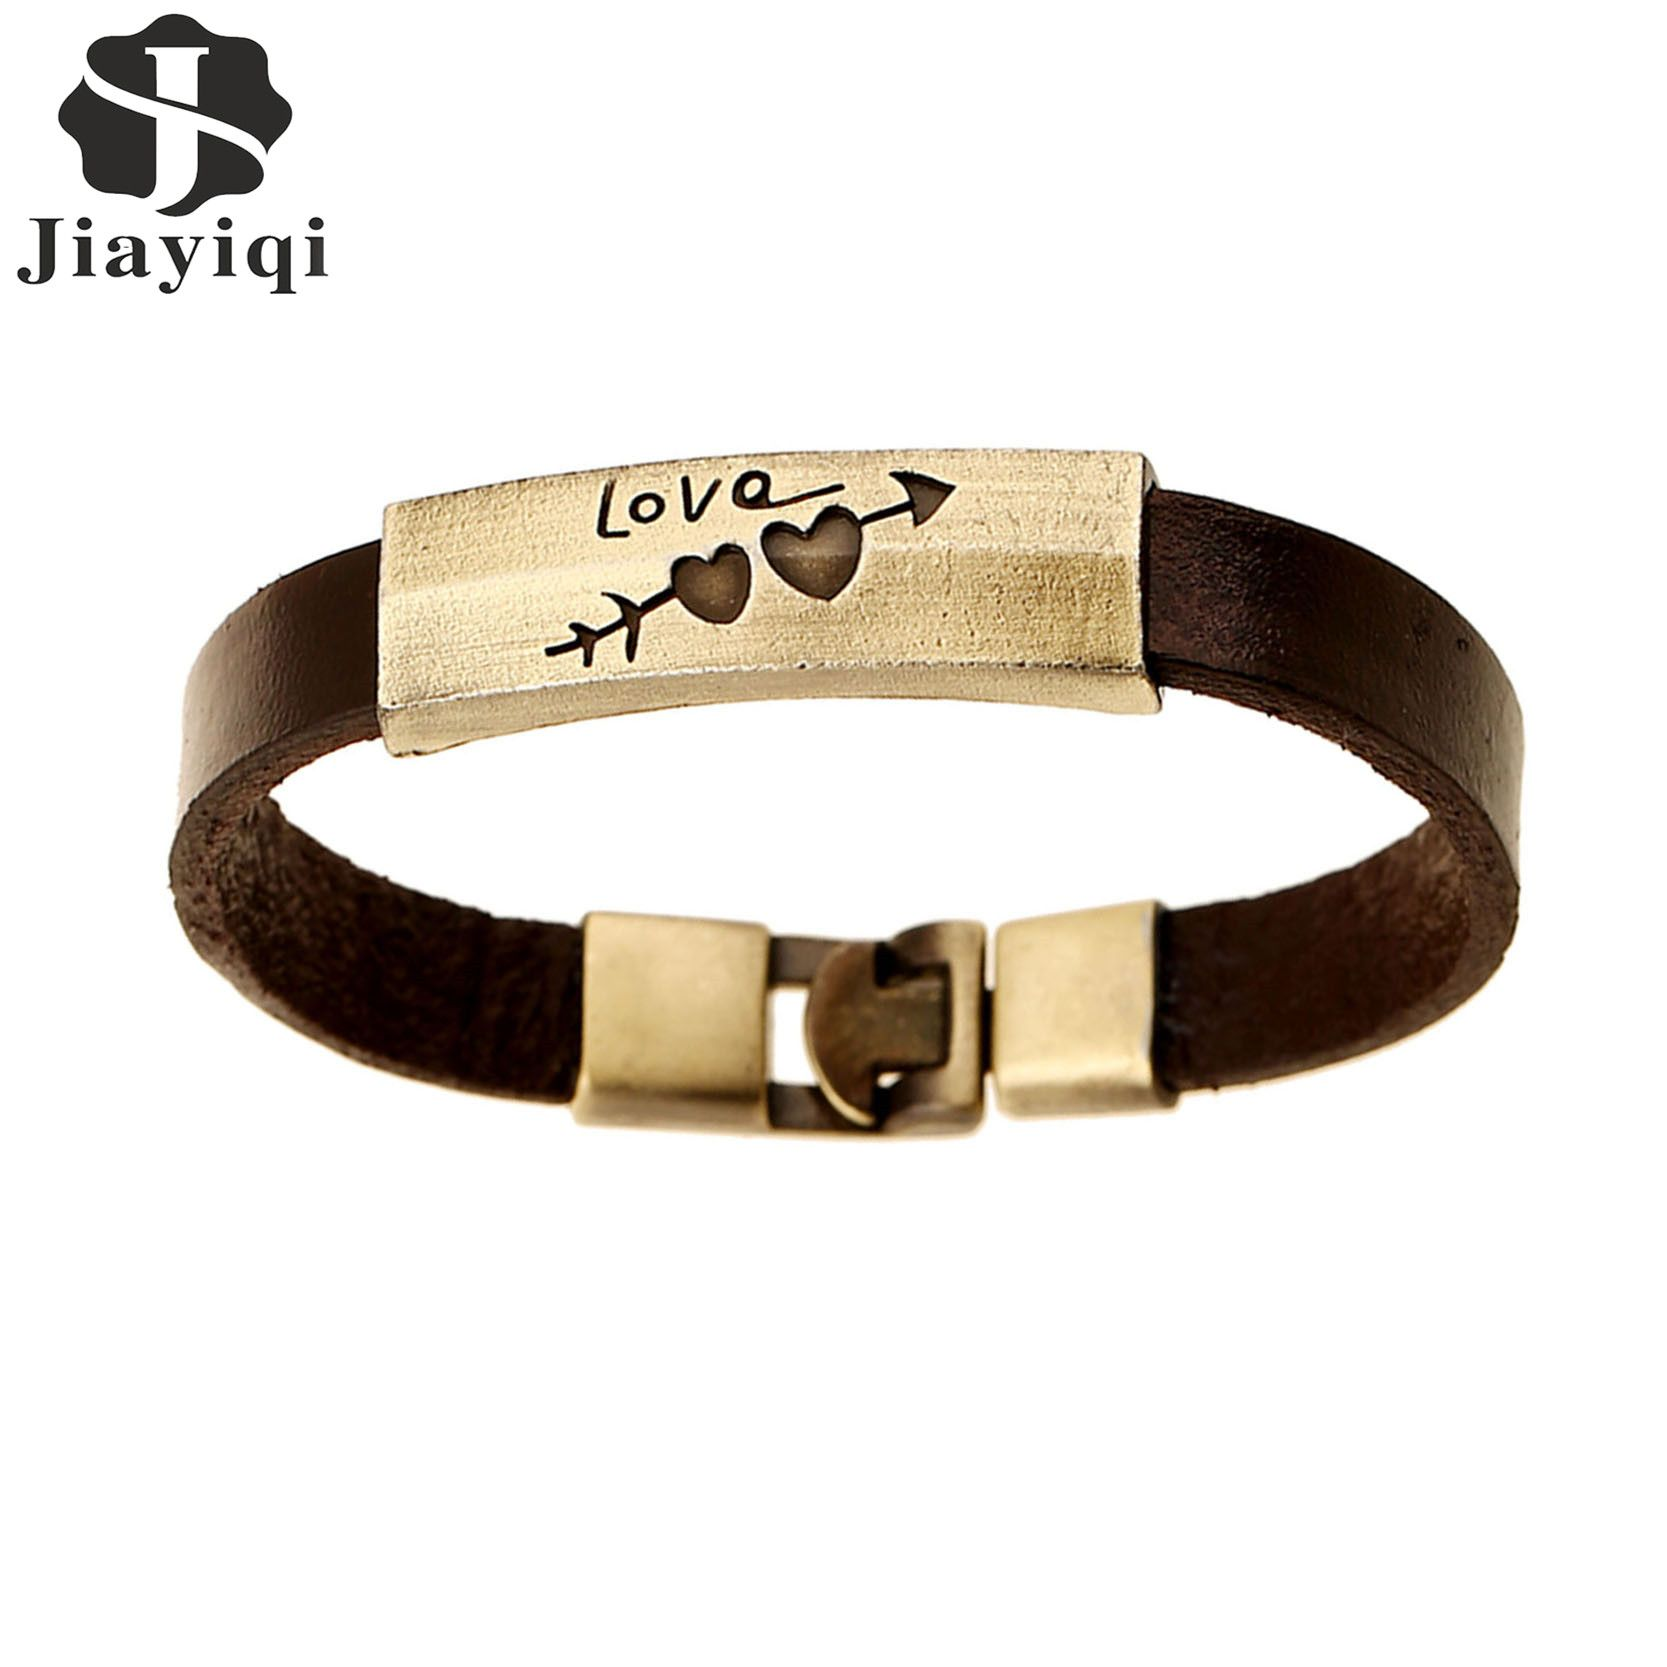 Jiayiqi new vintage brown heart cowhide leather cuff bracelets